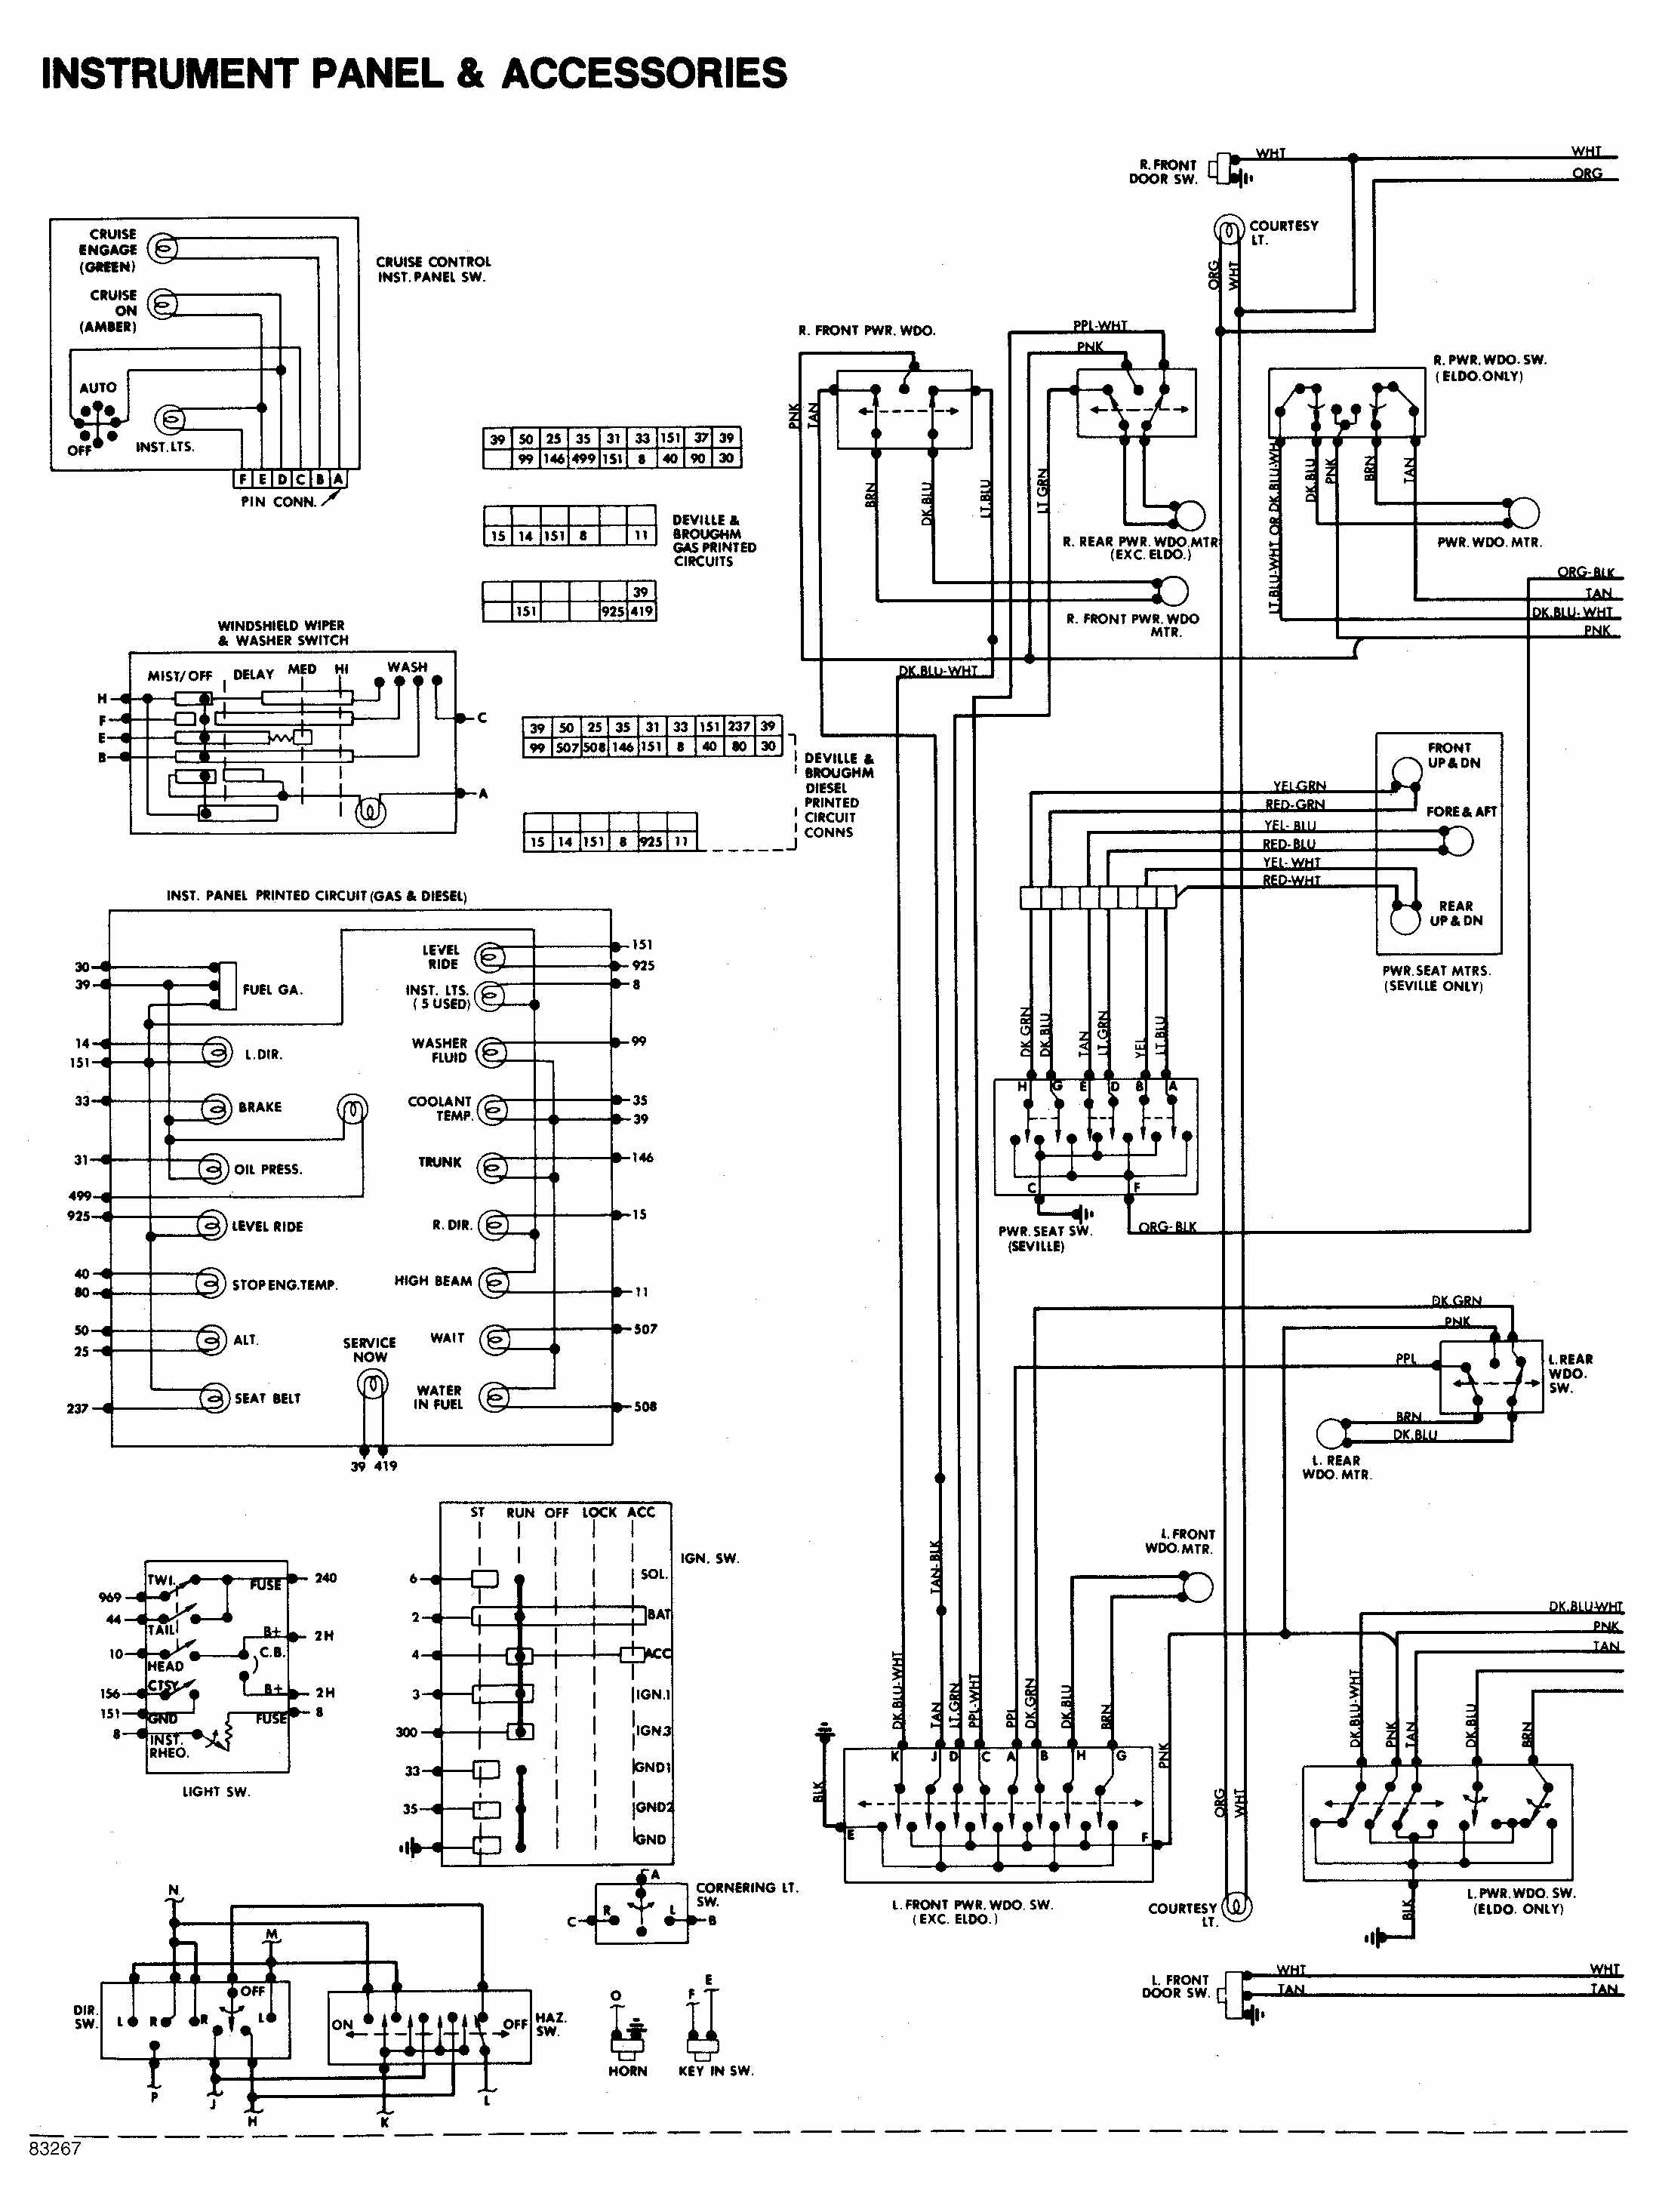 1995 cadillac fleetwood fuse box diagram